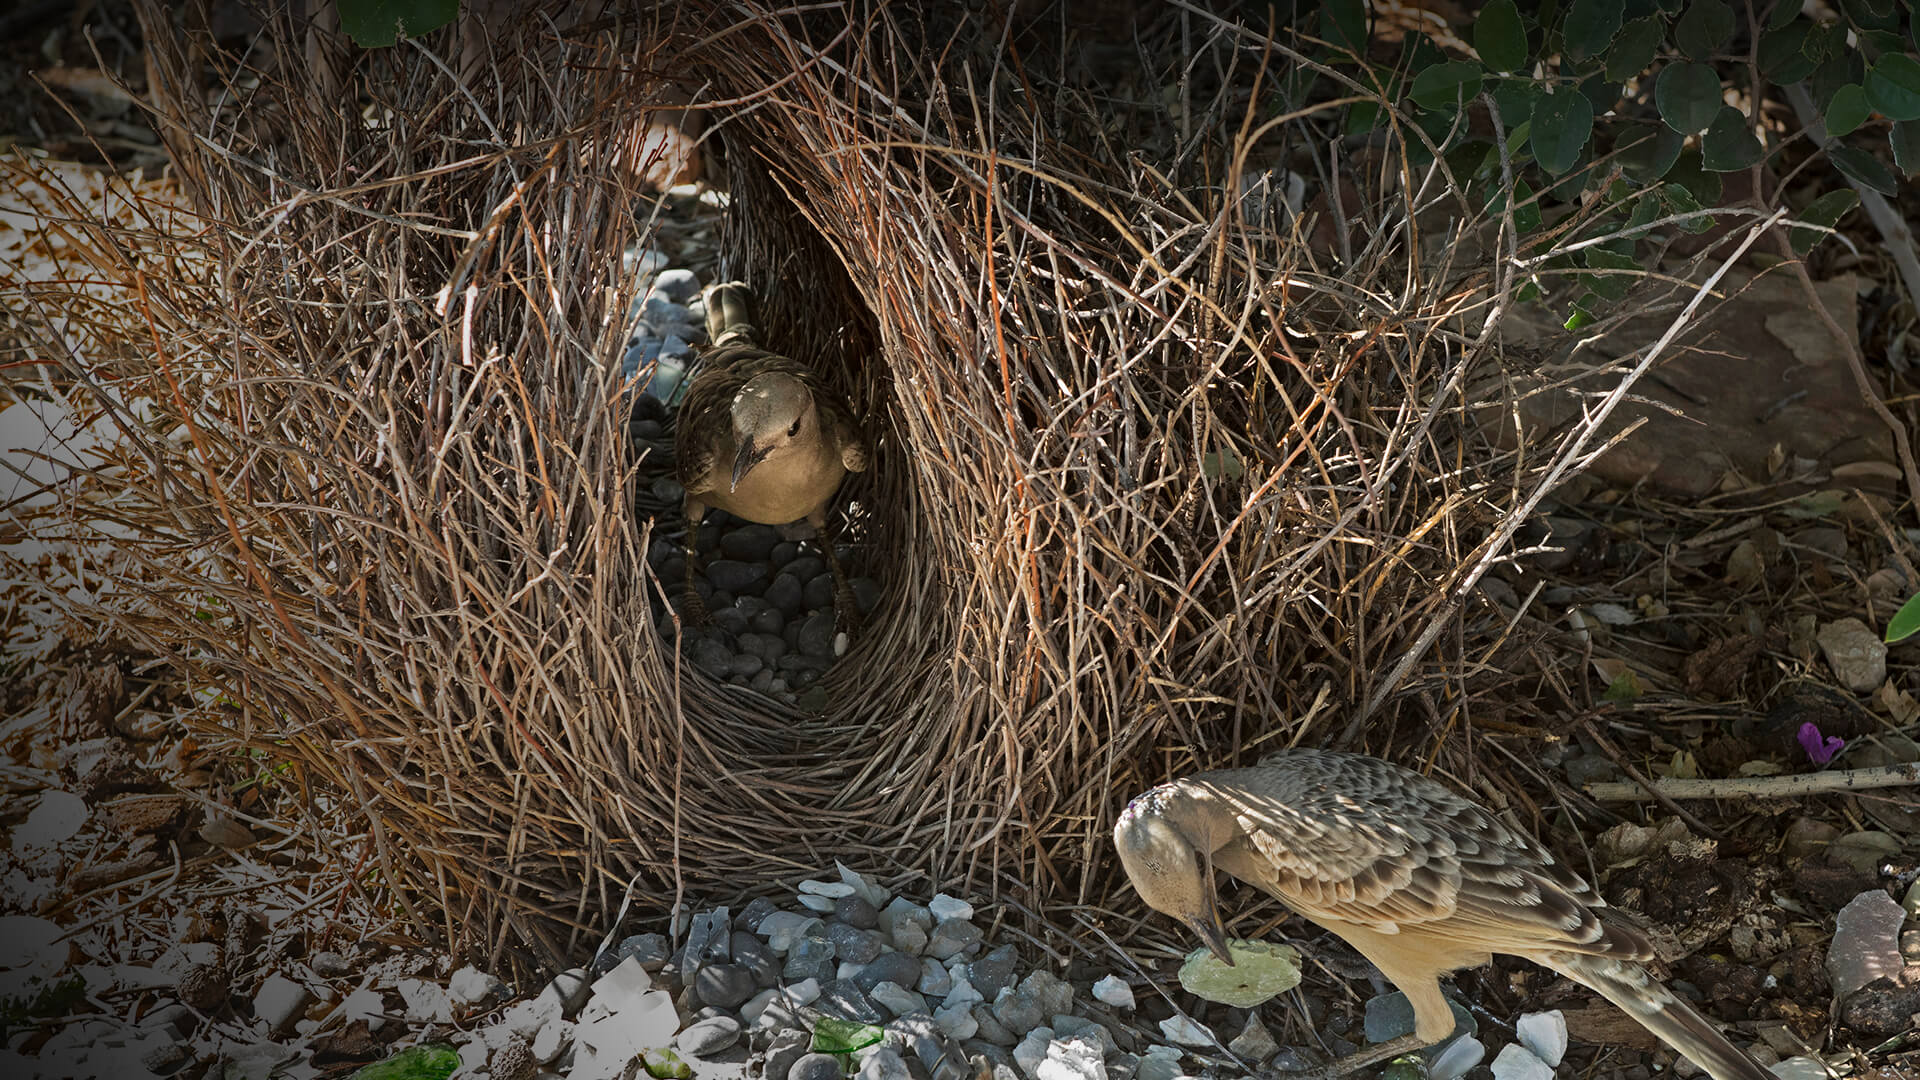 Male and female Great bowerbirds inspecting bower